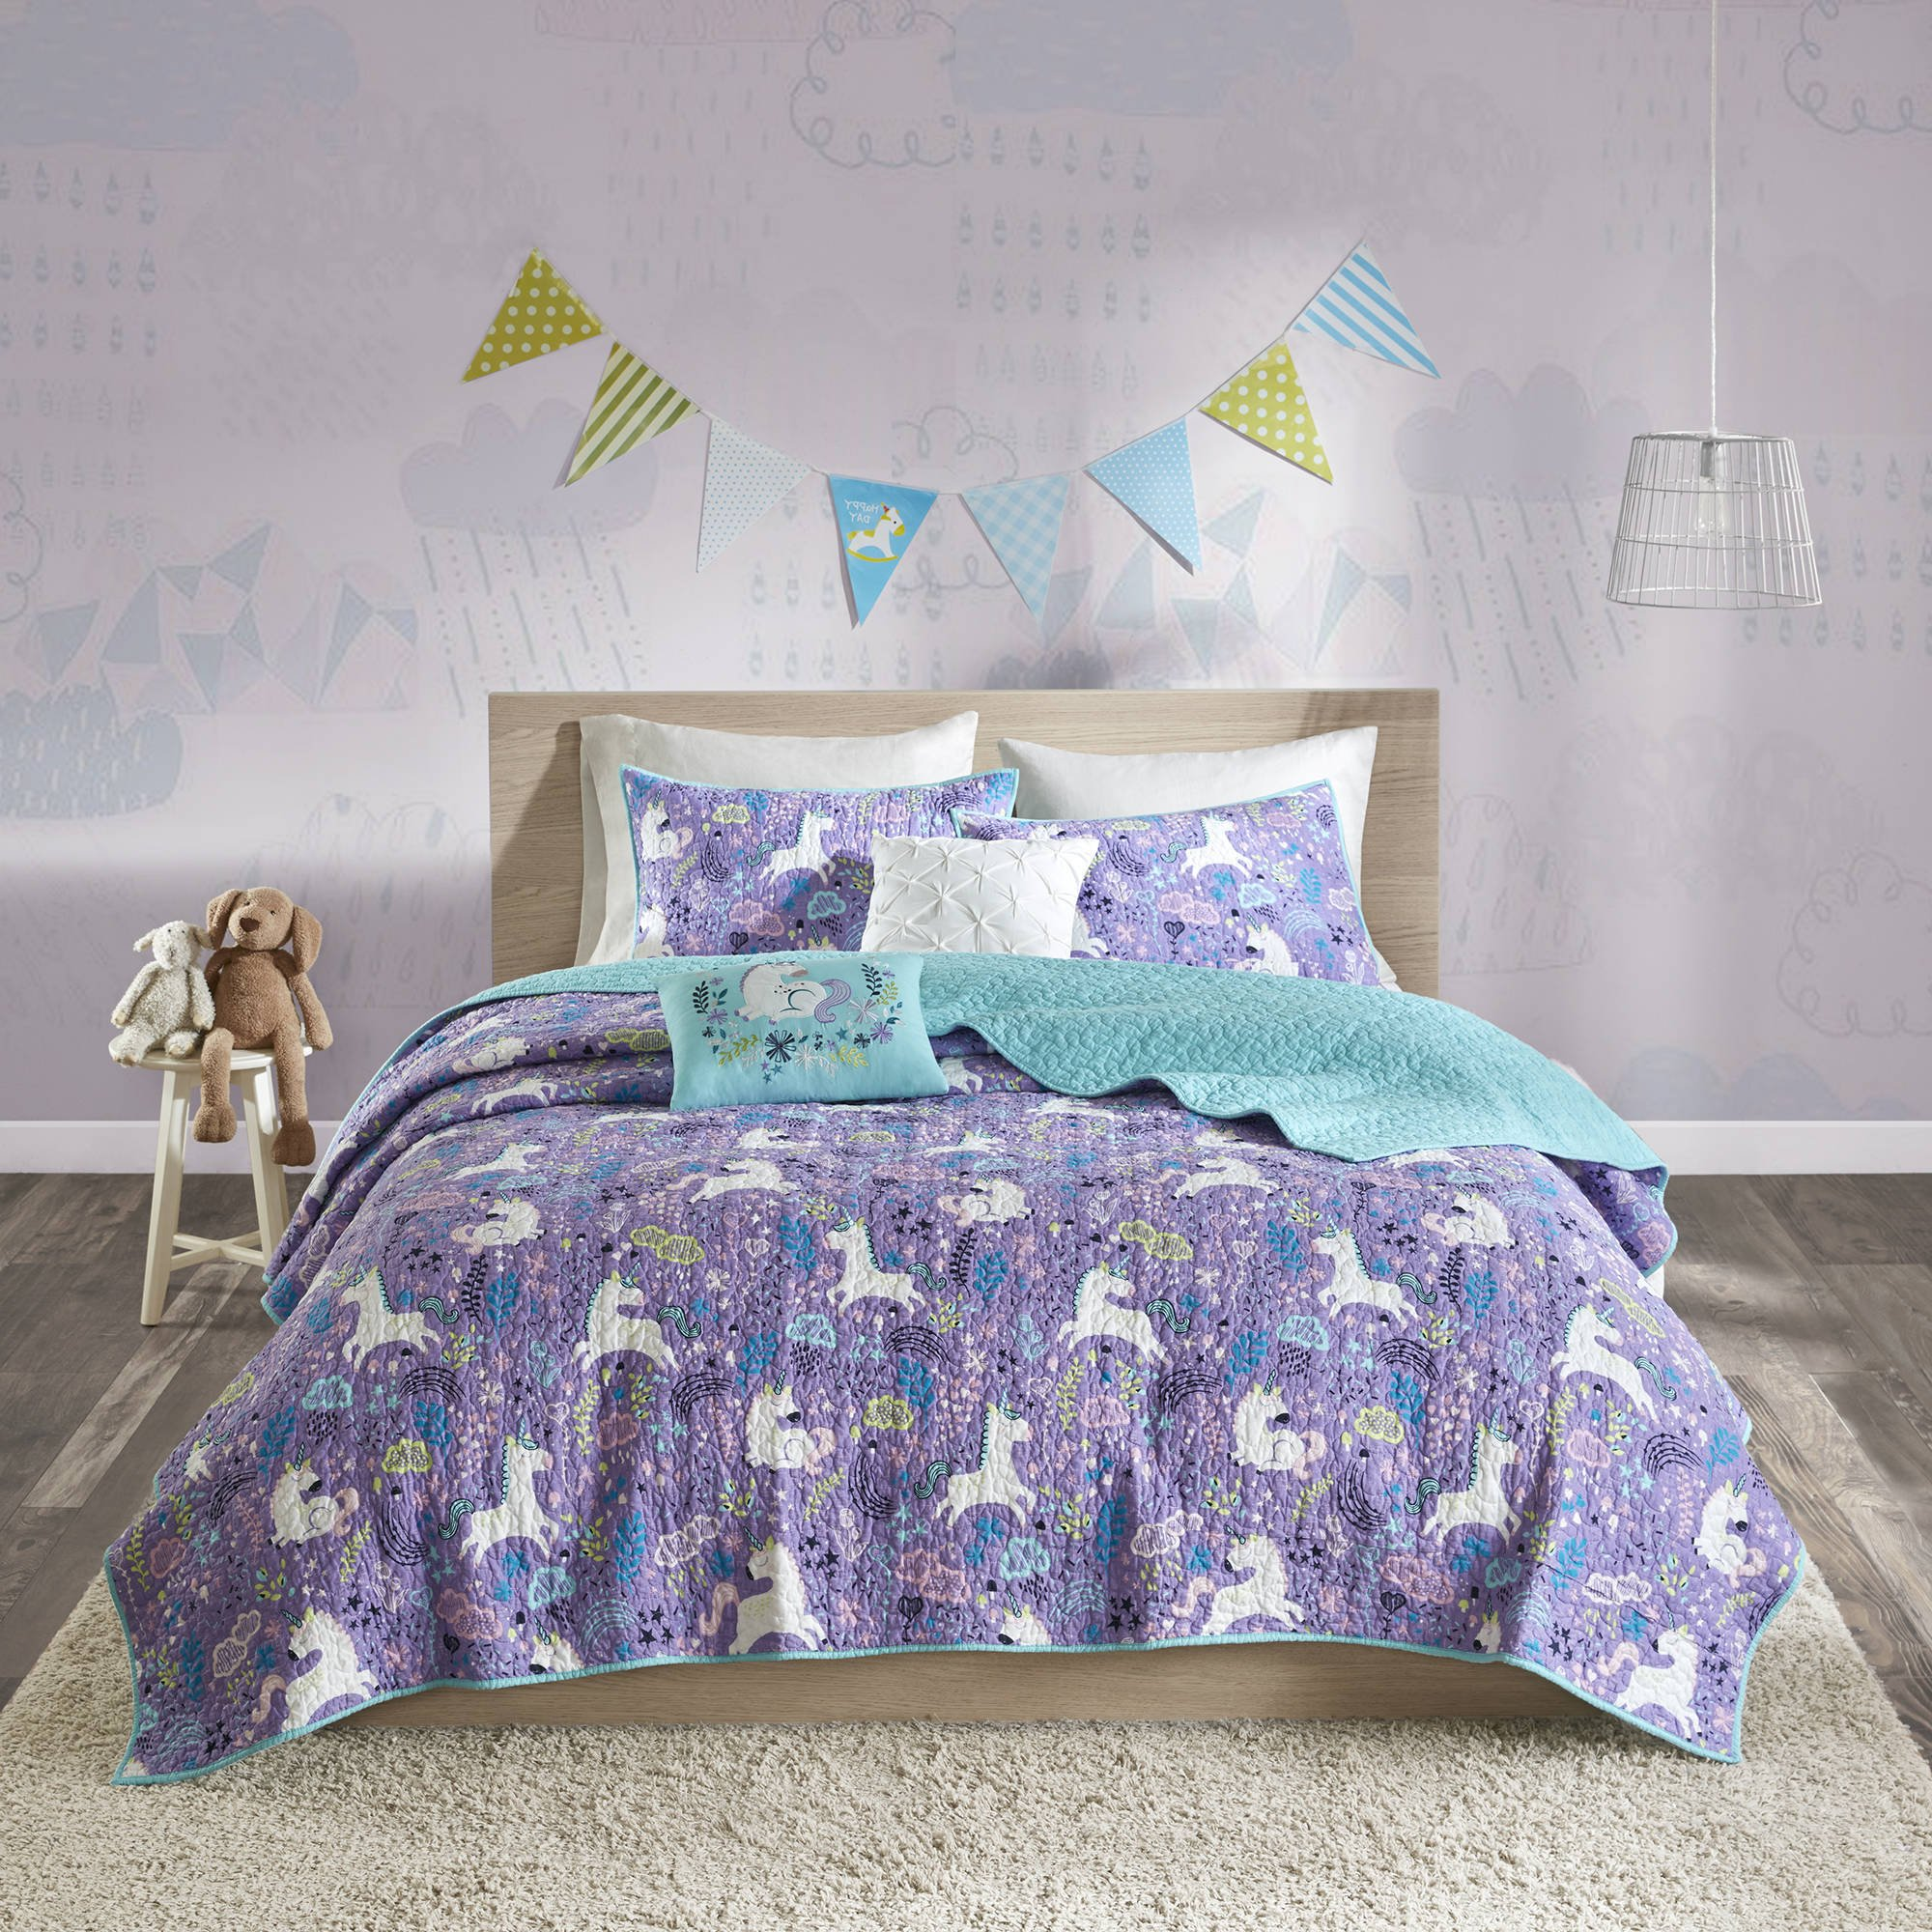 5 Piece Girls Purple Multi Whimsical Unicorn Theme Coverlet Full Queen Set, Beautiful All Over Charming Hearts, Flowers, Clouds, Magical Pattern, Soft & Cozy Kids Bedding, Bright Abstract Colors